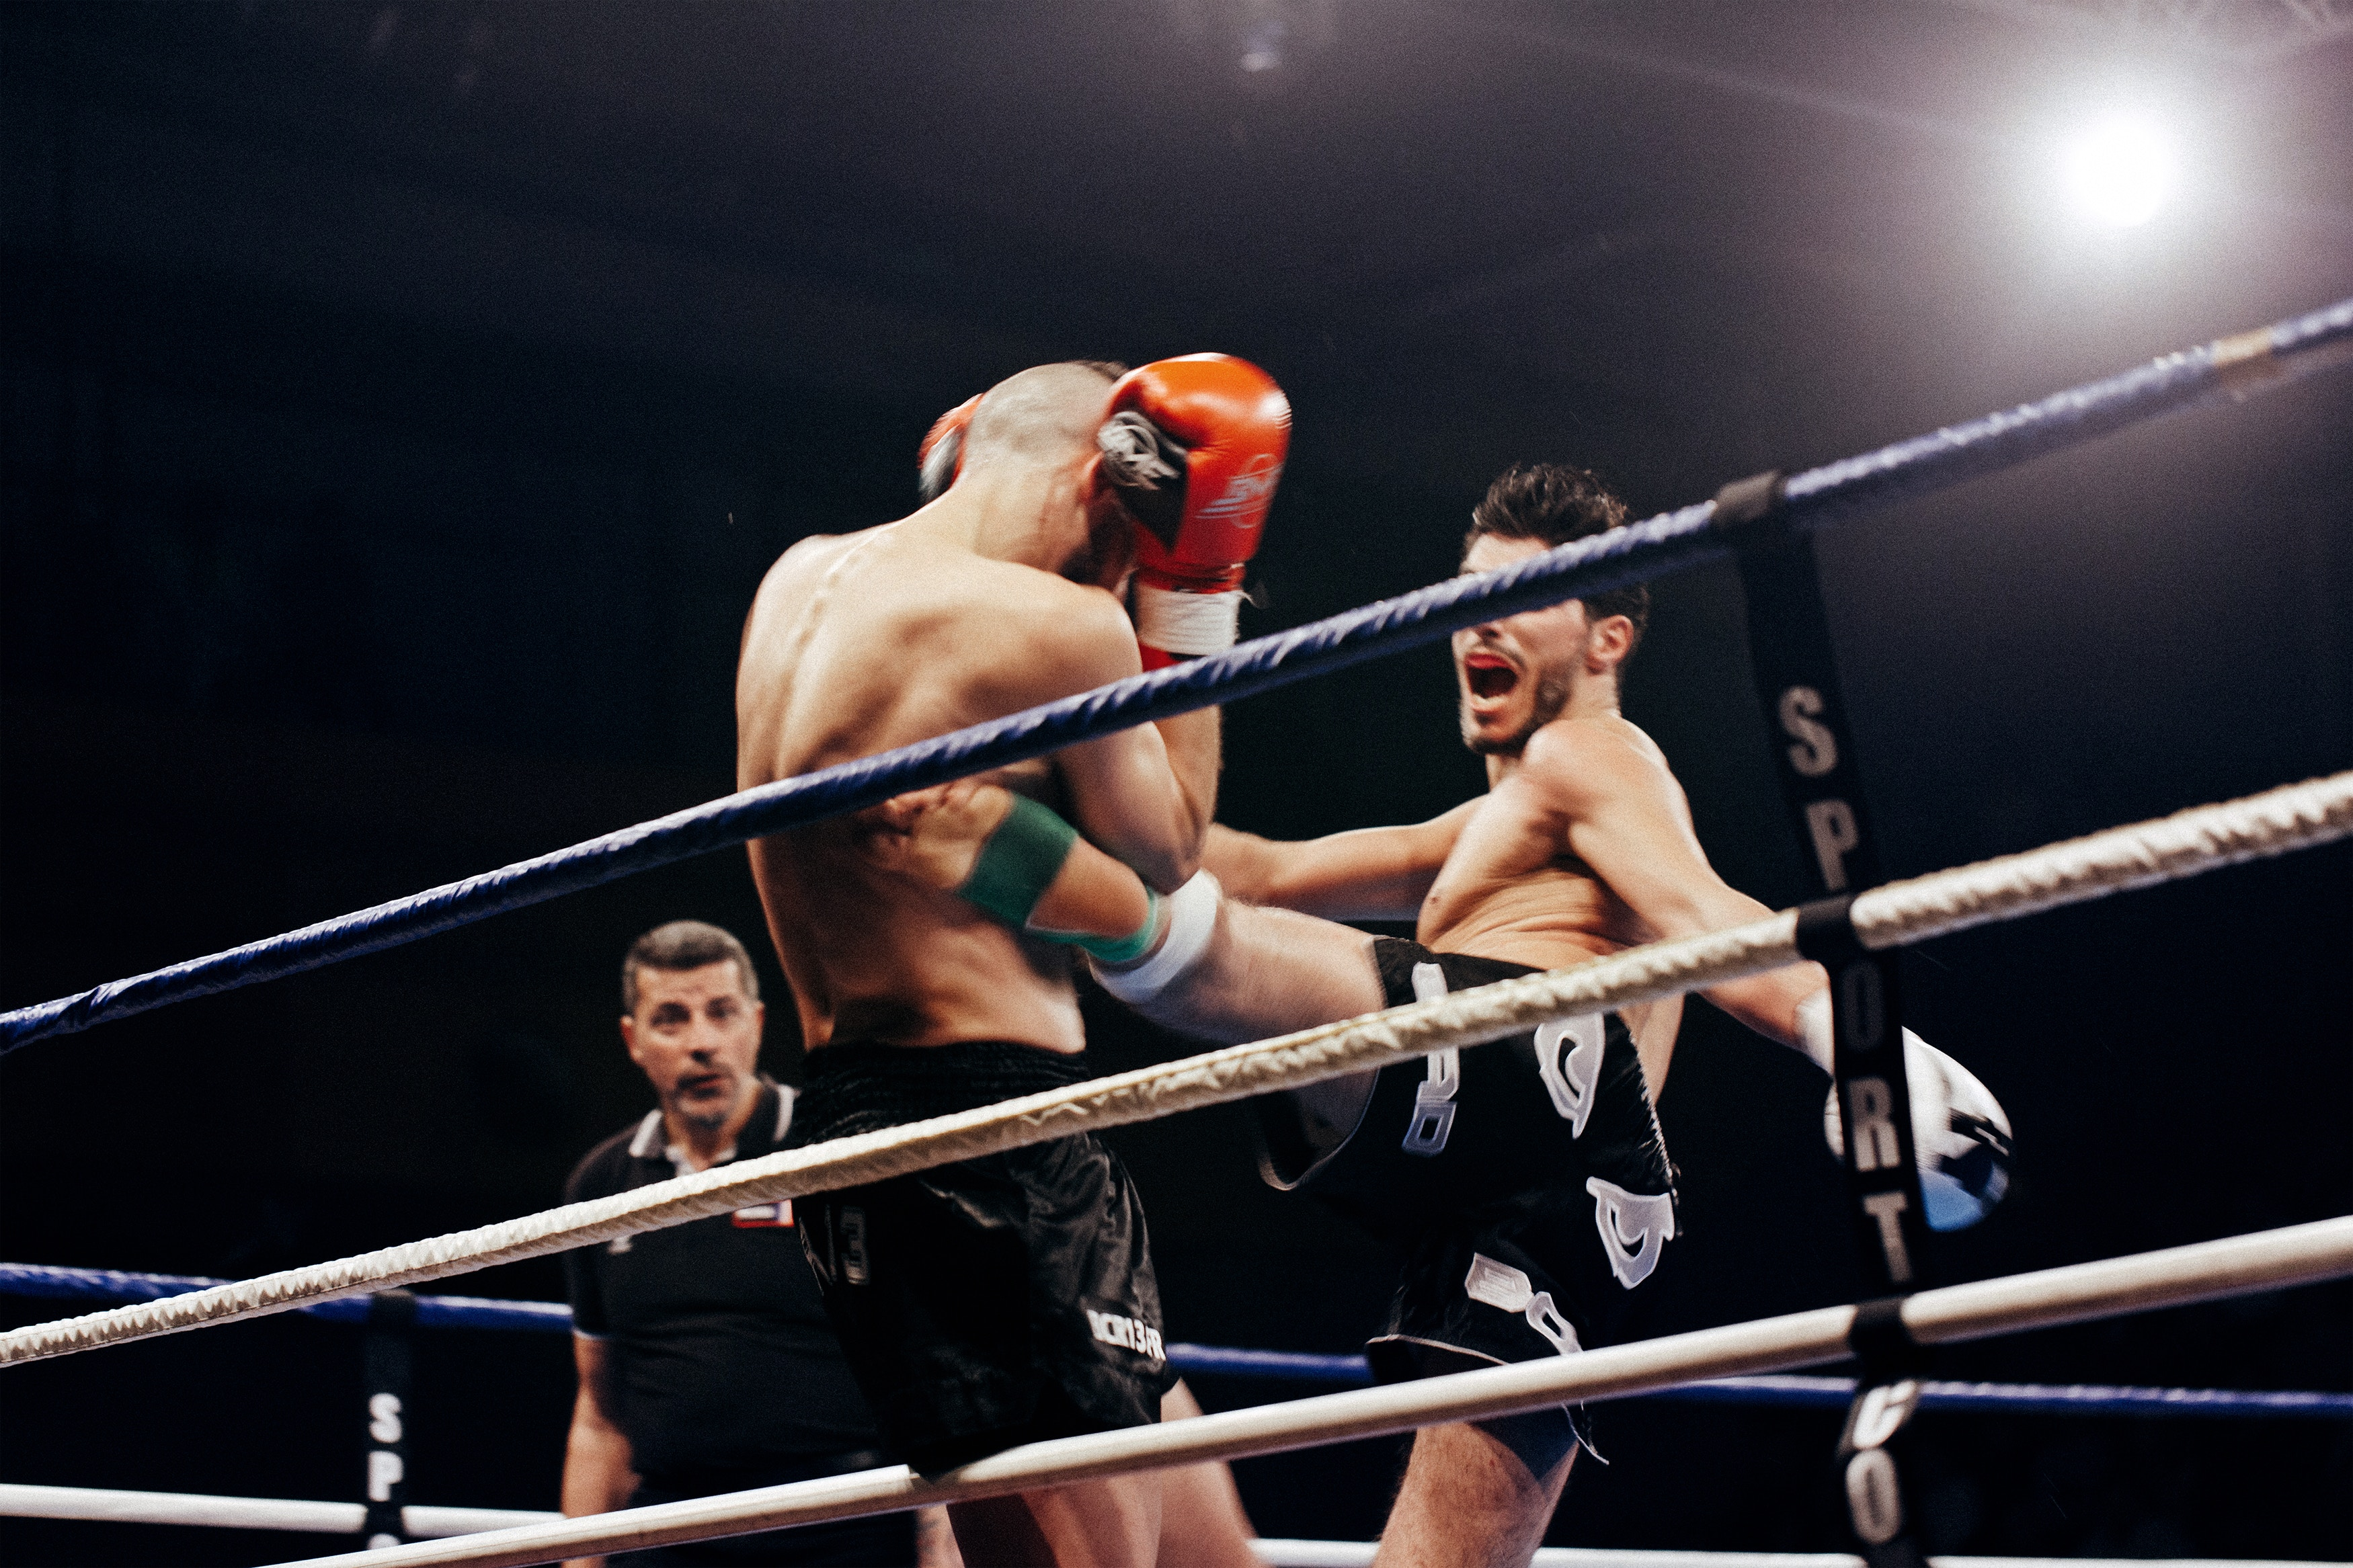 A boxer protects his head to prevent a concussion during a fight